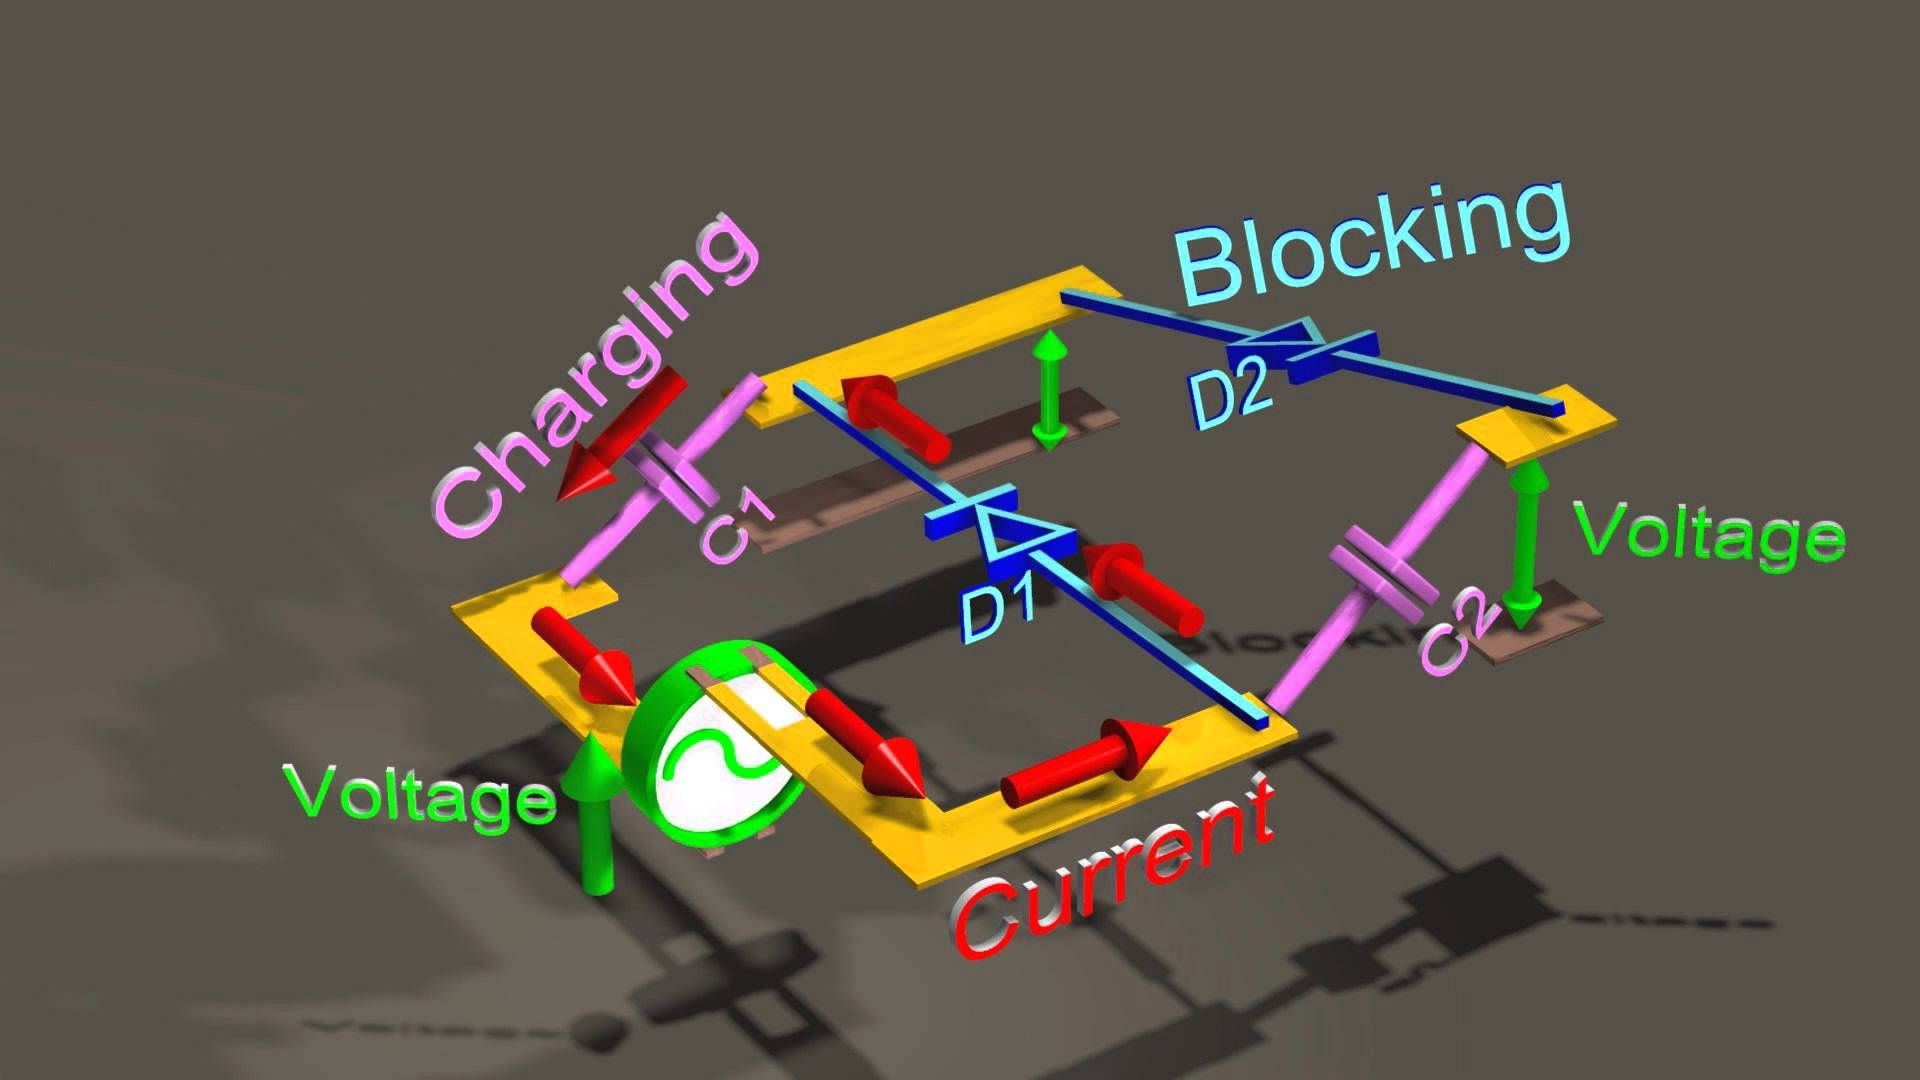 Easy To Understand 3d Animation Showing How High Voltage Ladders Create Extremely High Dc Voltages Using Just Diodes And C Generation Capacitor Diy Electronics